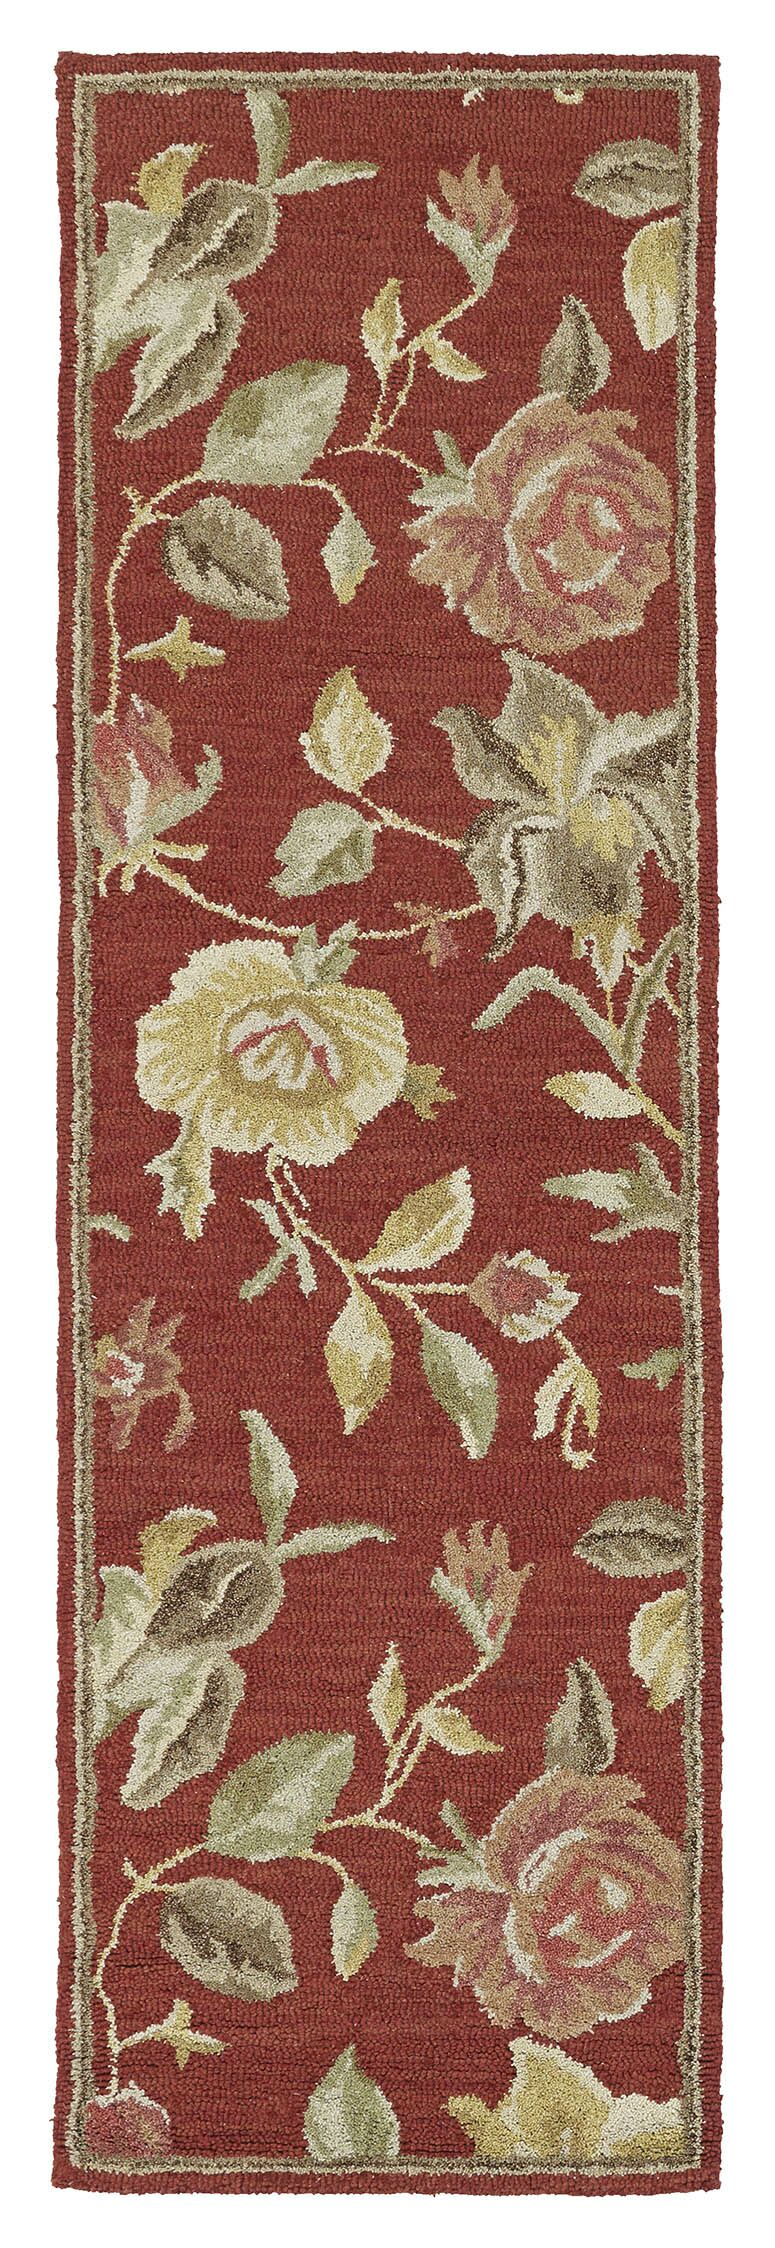 Blakeslee Red Floral Rug Rug Size: Rectangle 5' x 7'9